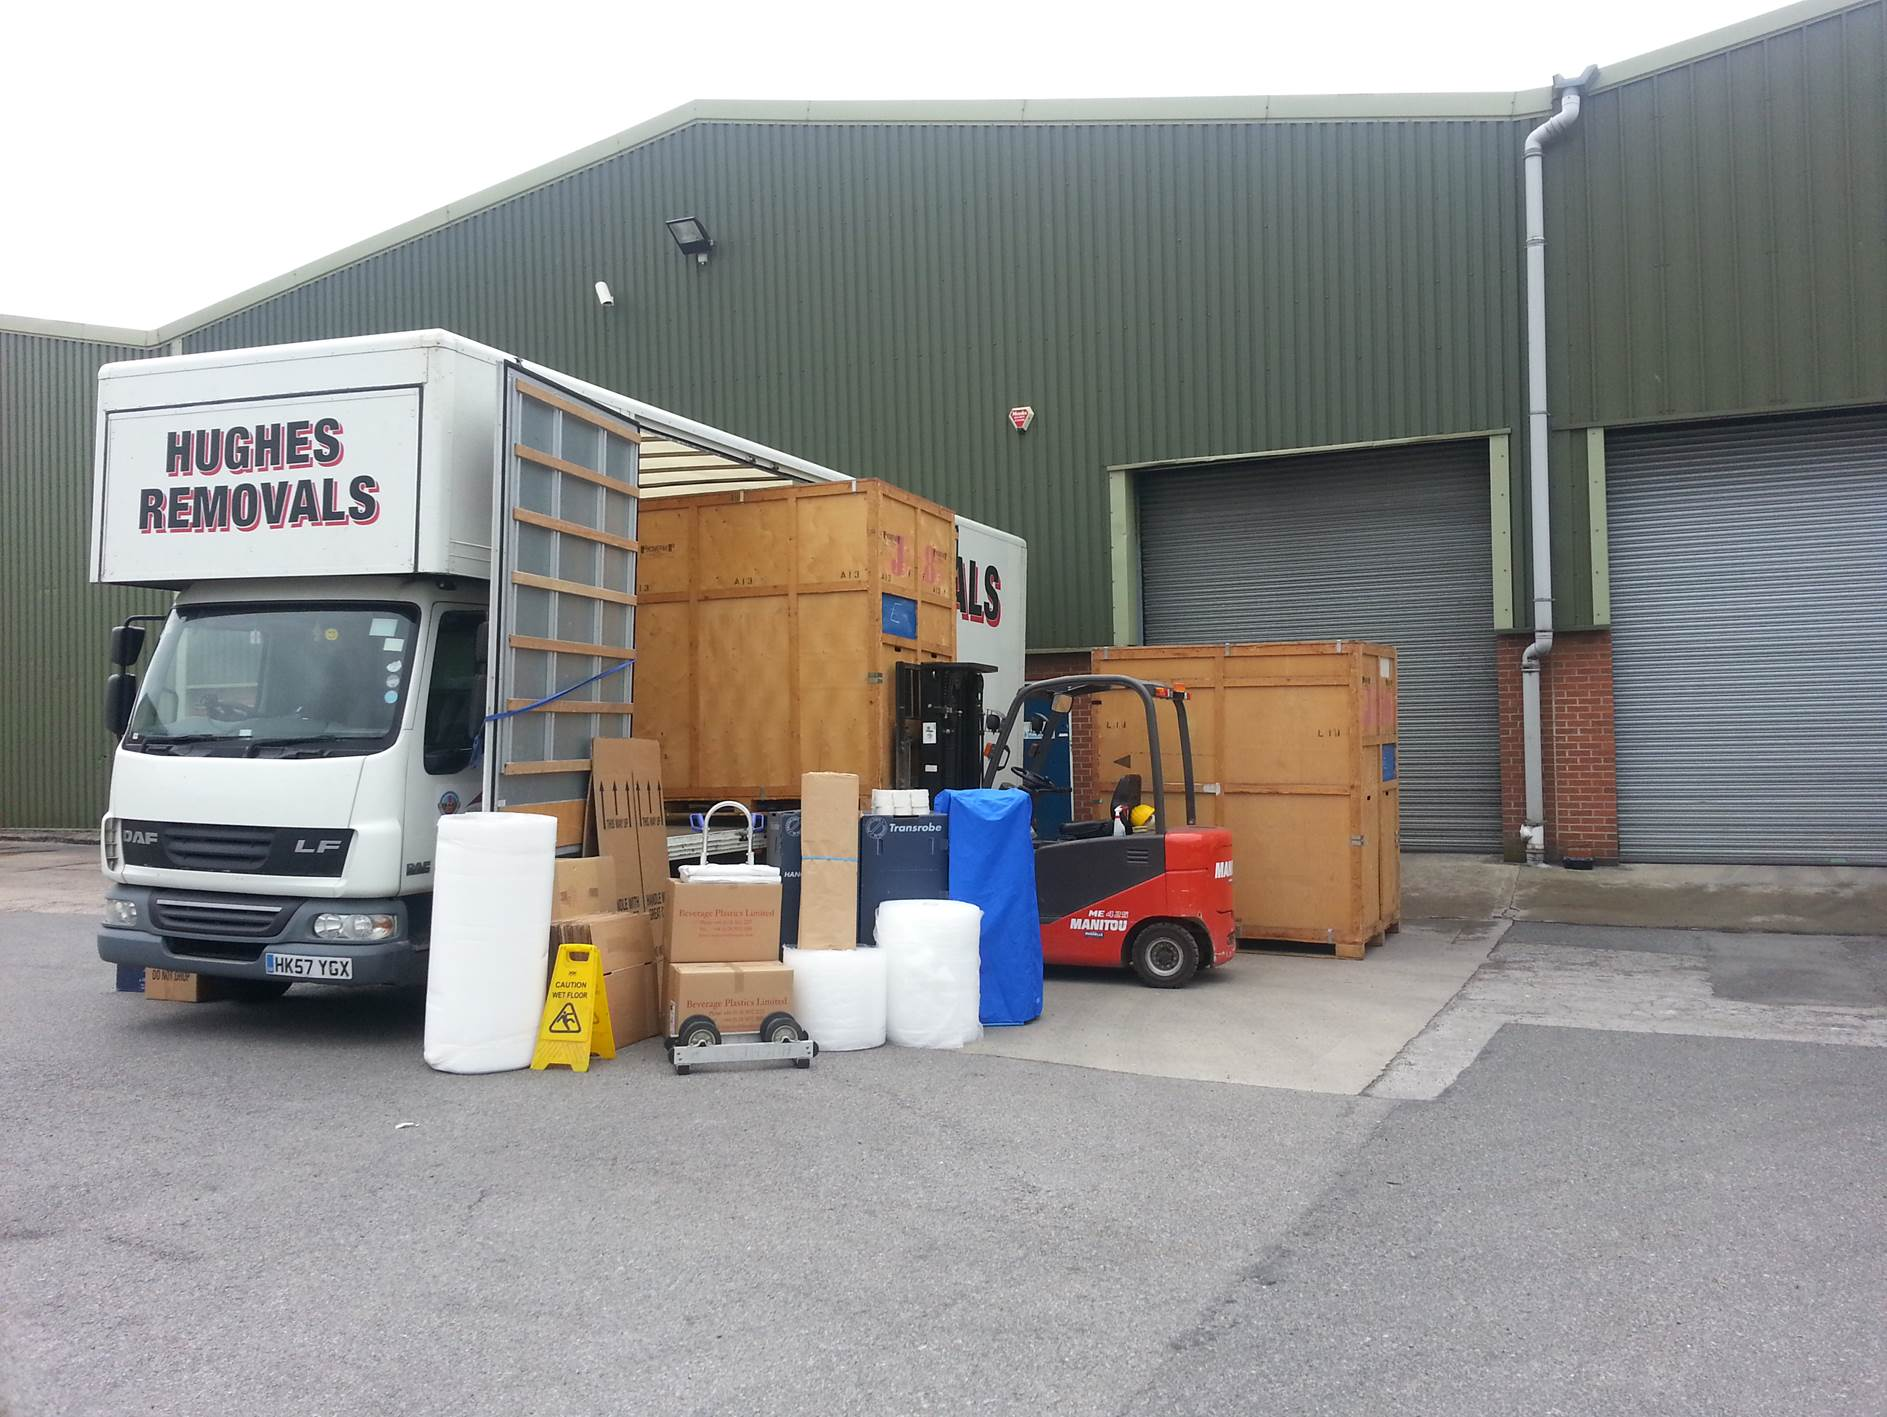 Hughes Removals van at storage facility